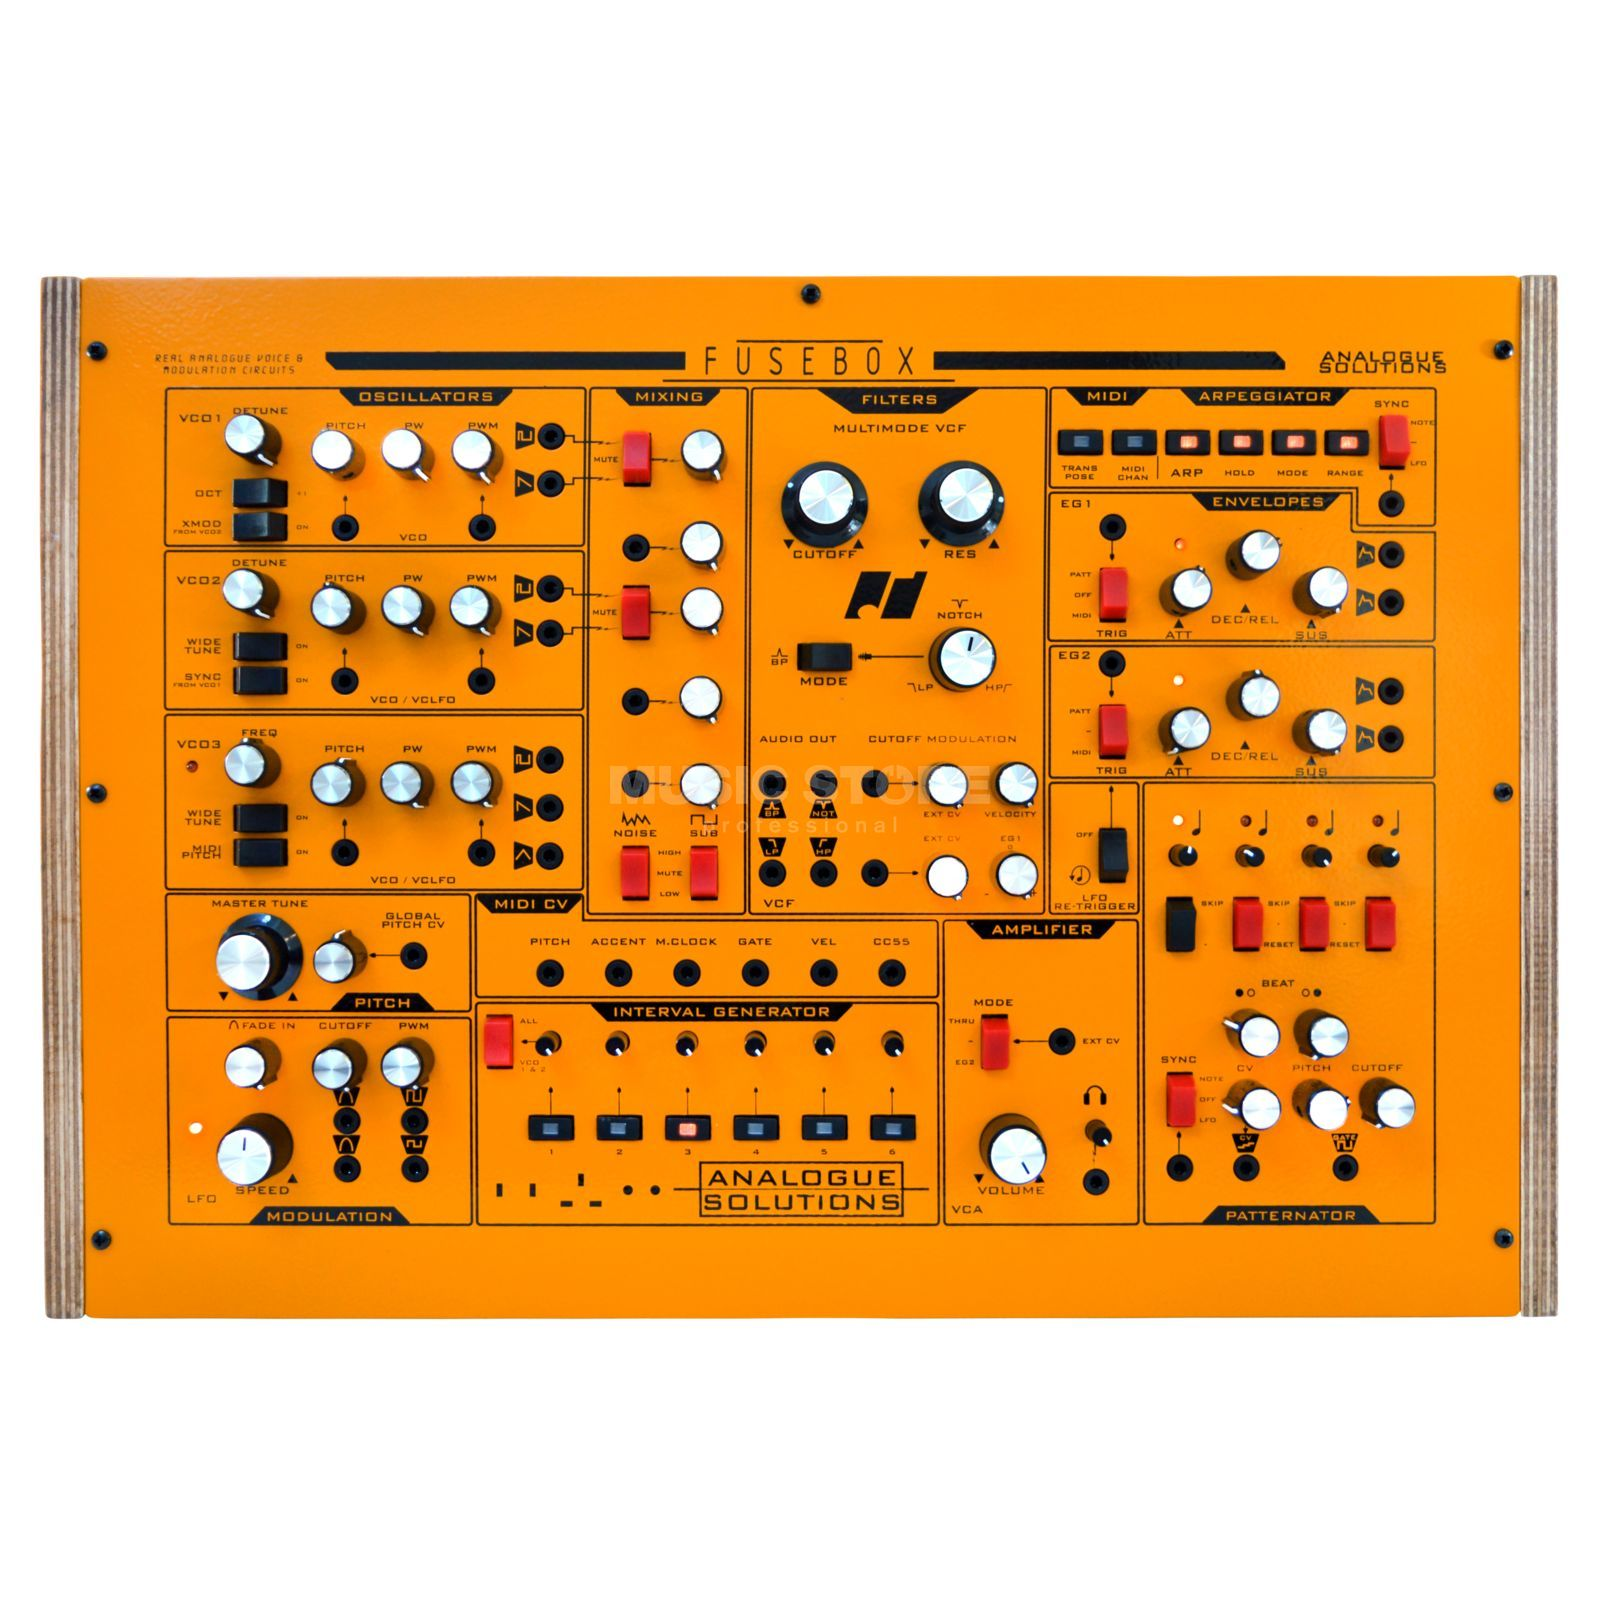 Analogue Solutions Fusebox Product Image